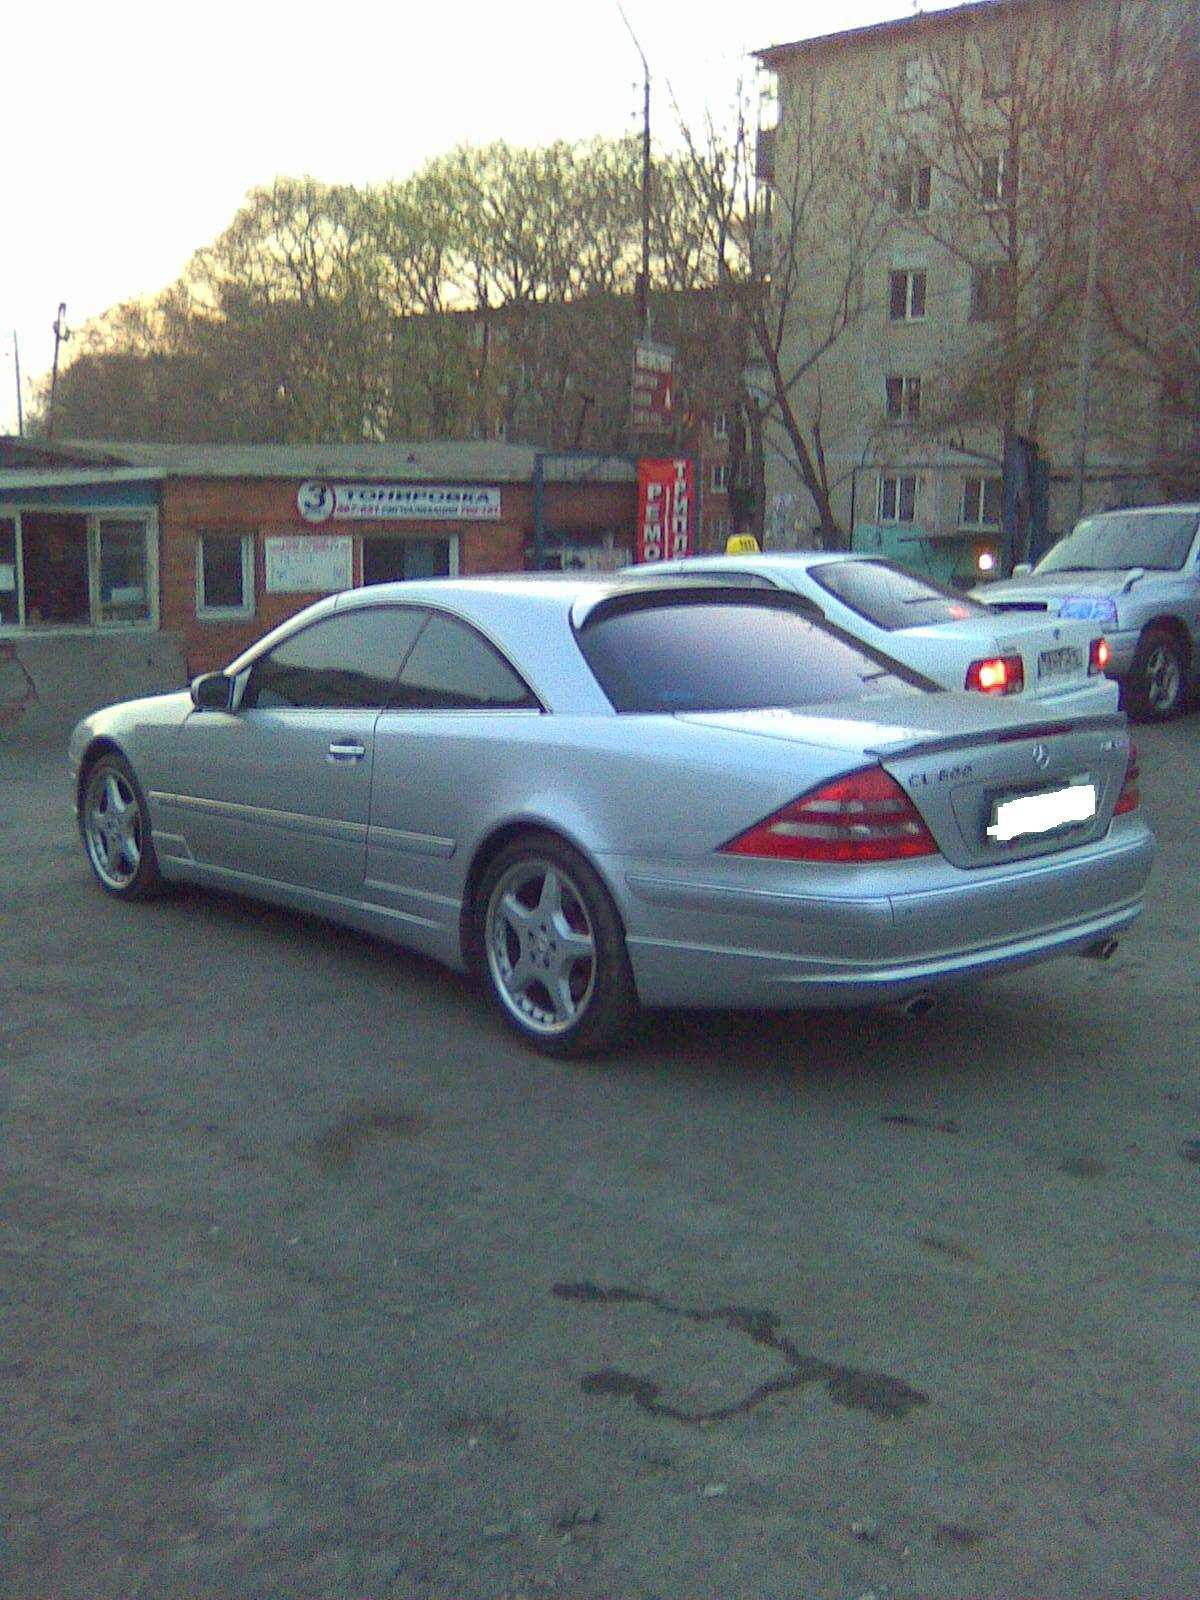 2001 mercedes benz cl class for sale 6 0 gasoline fr or for Mercedes benz cl class for sale